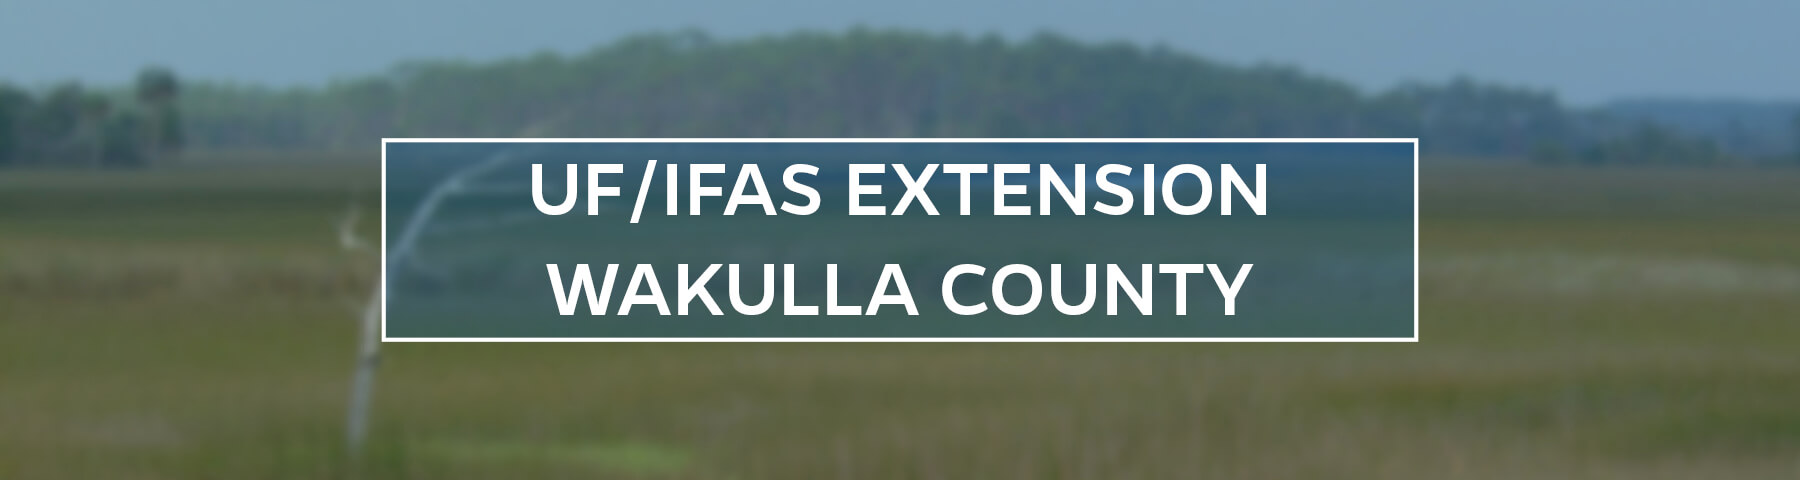 UF/IFAS Extension Wakulla County